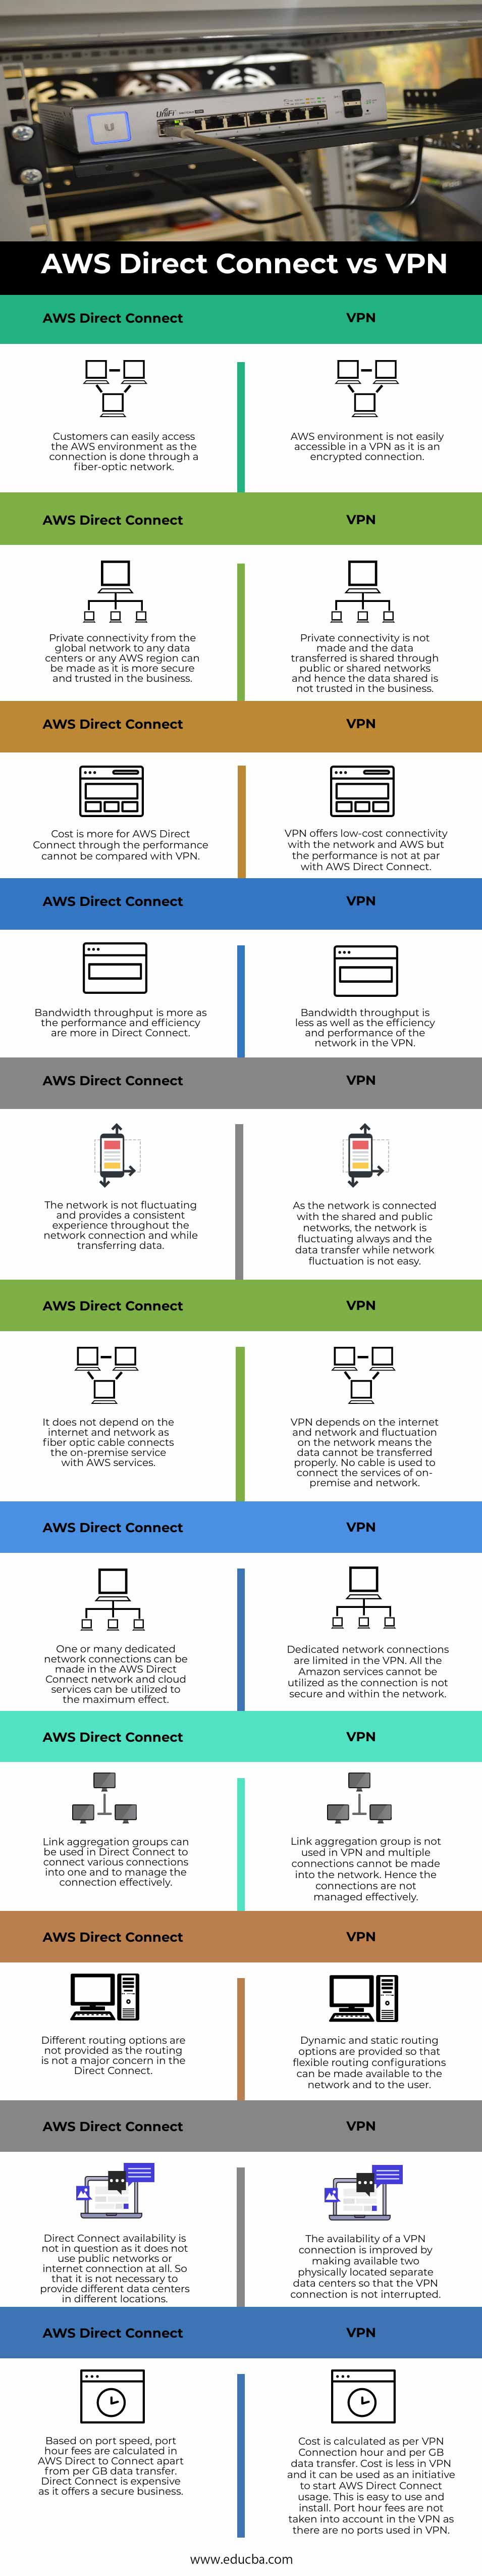 AWS-Direct-Connect-vs-VPN-info